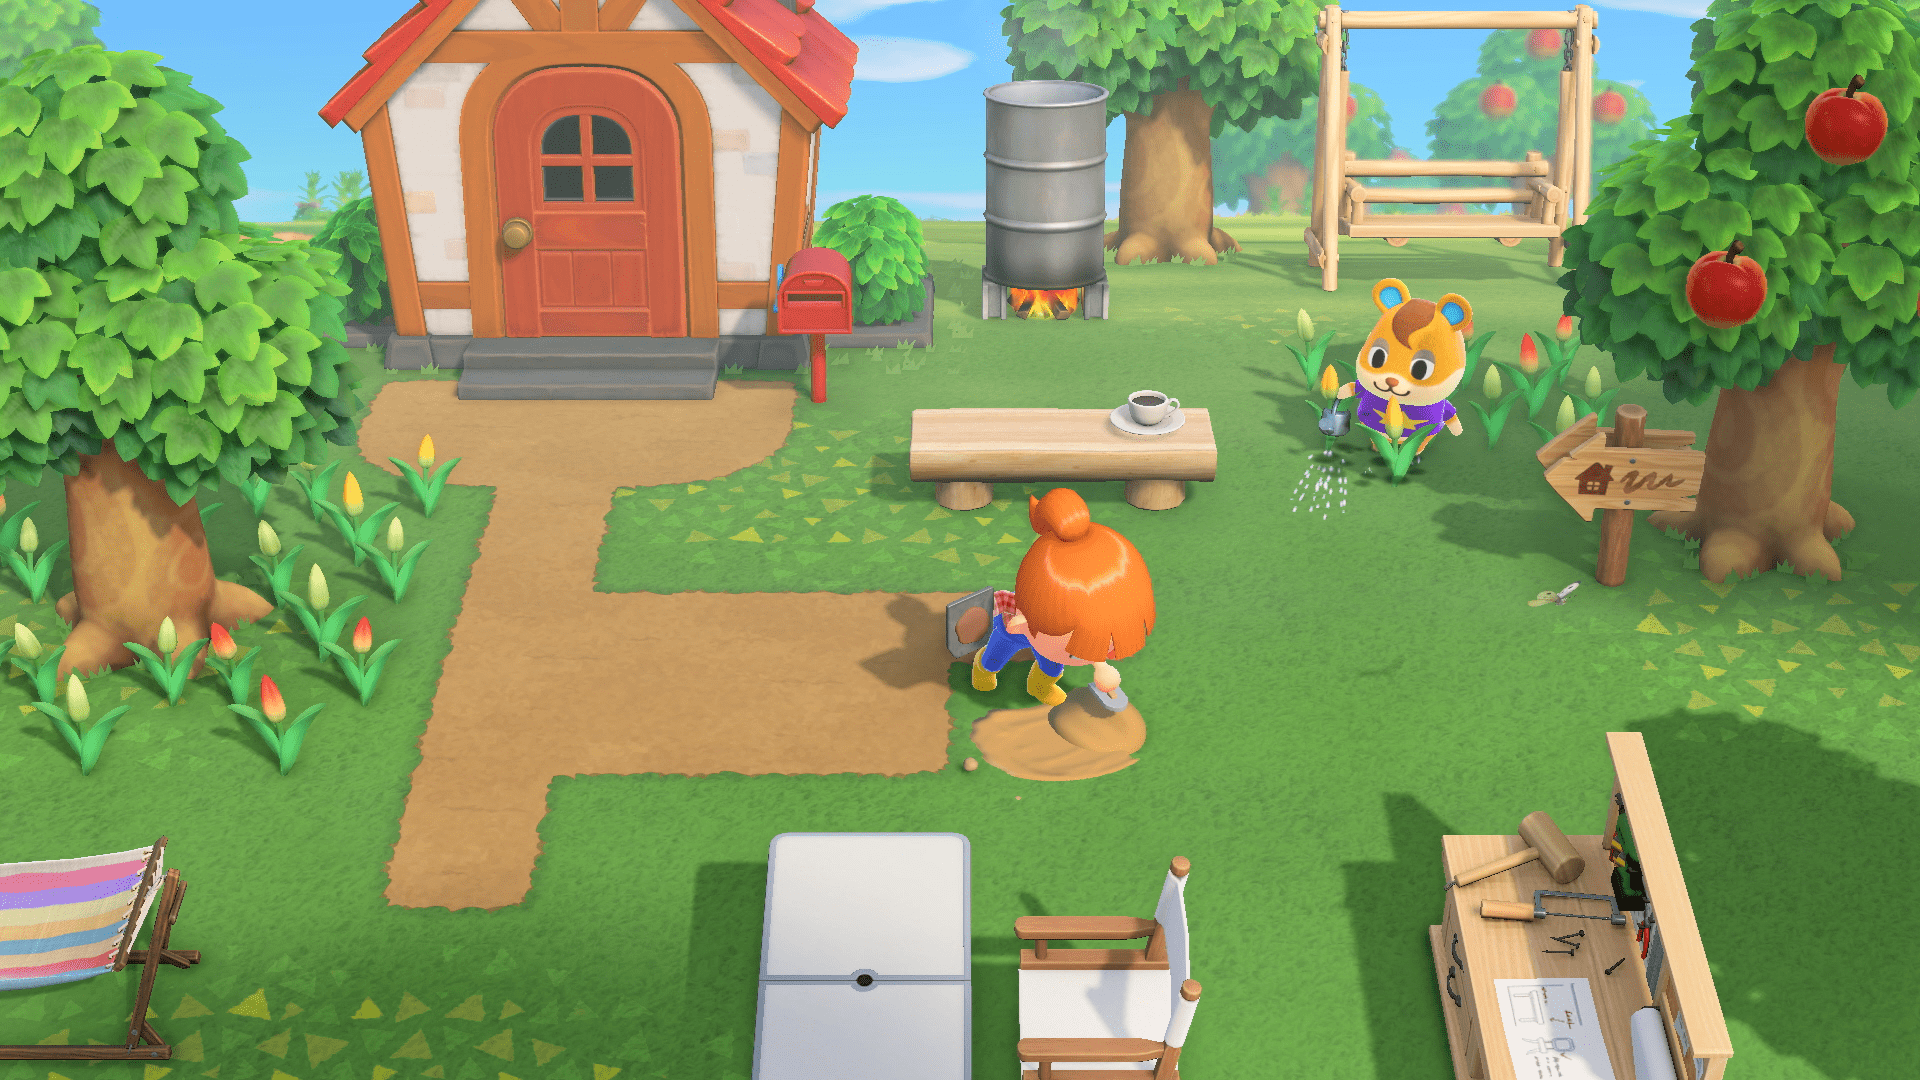 You can only have one Animal Crossing: New Horizons island